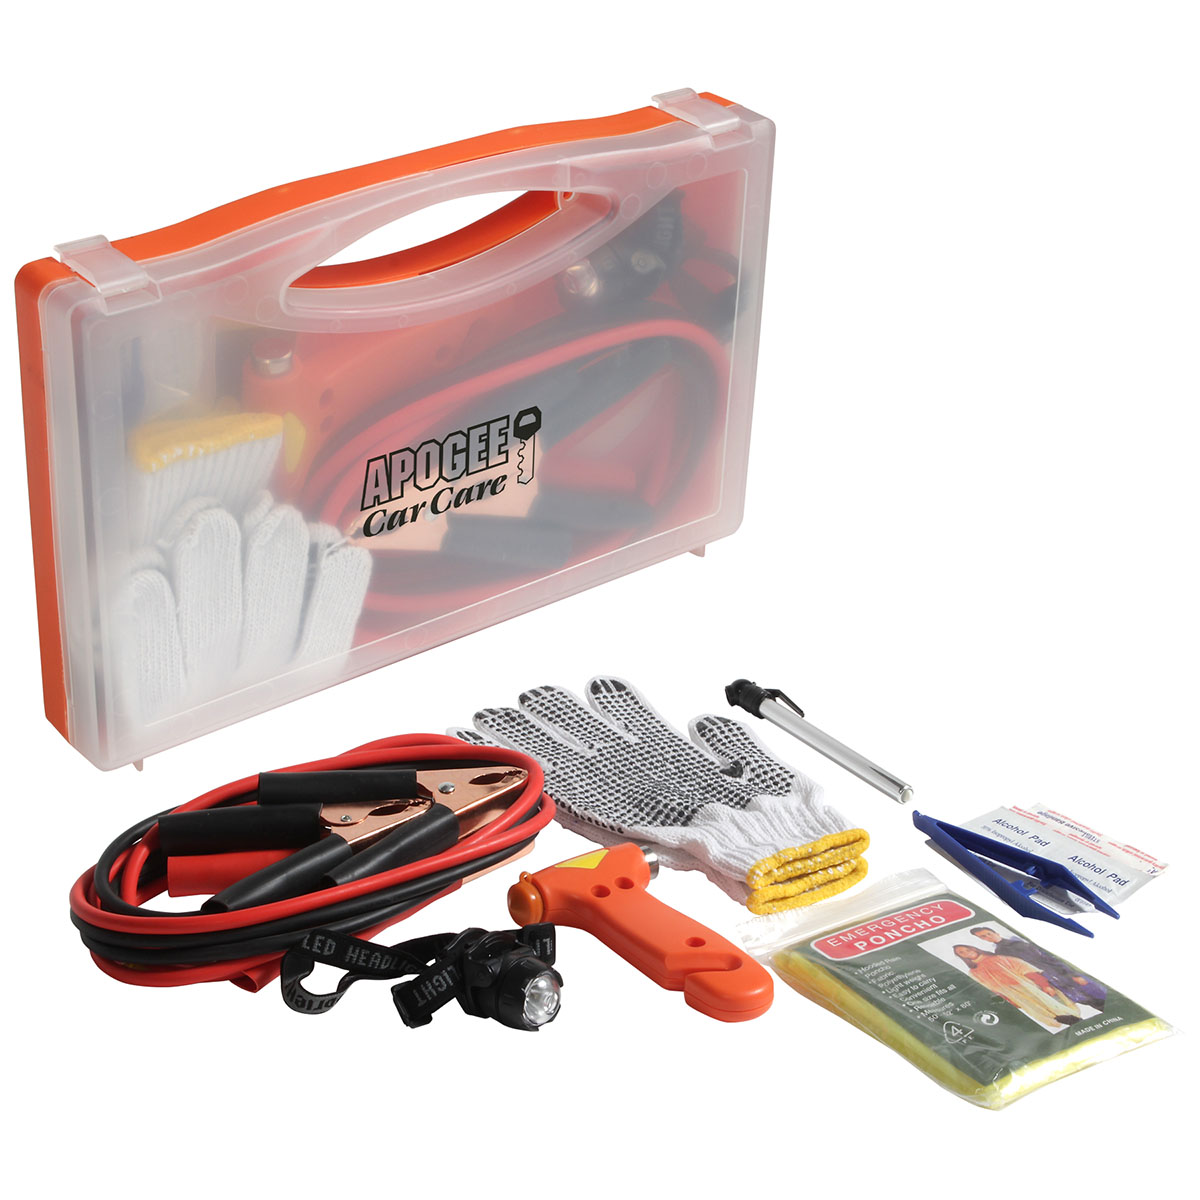 Crossroad Emergency Road Kit, WAU-CE13 - 1 Colour Imprint